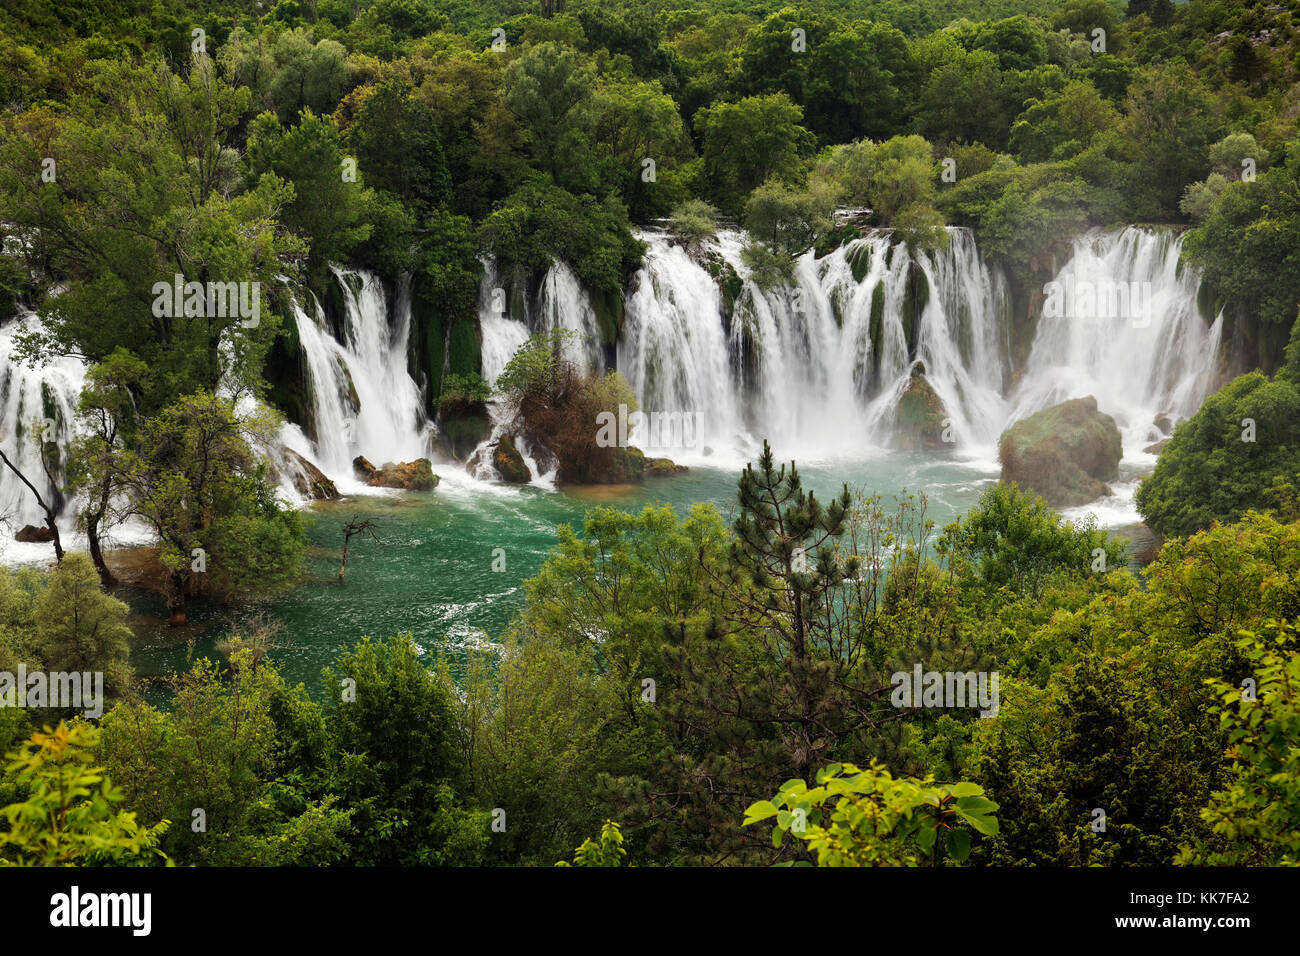 Kravice waterfall in Bosnia and Herzegovina - Stock Image